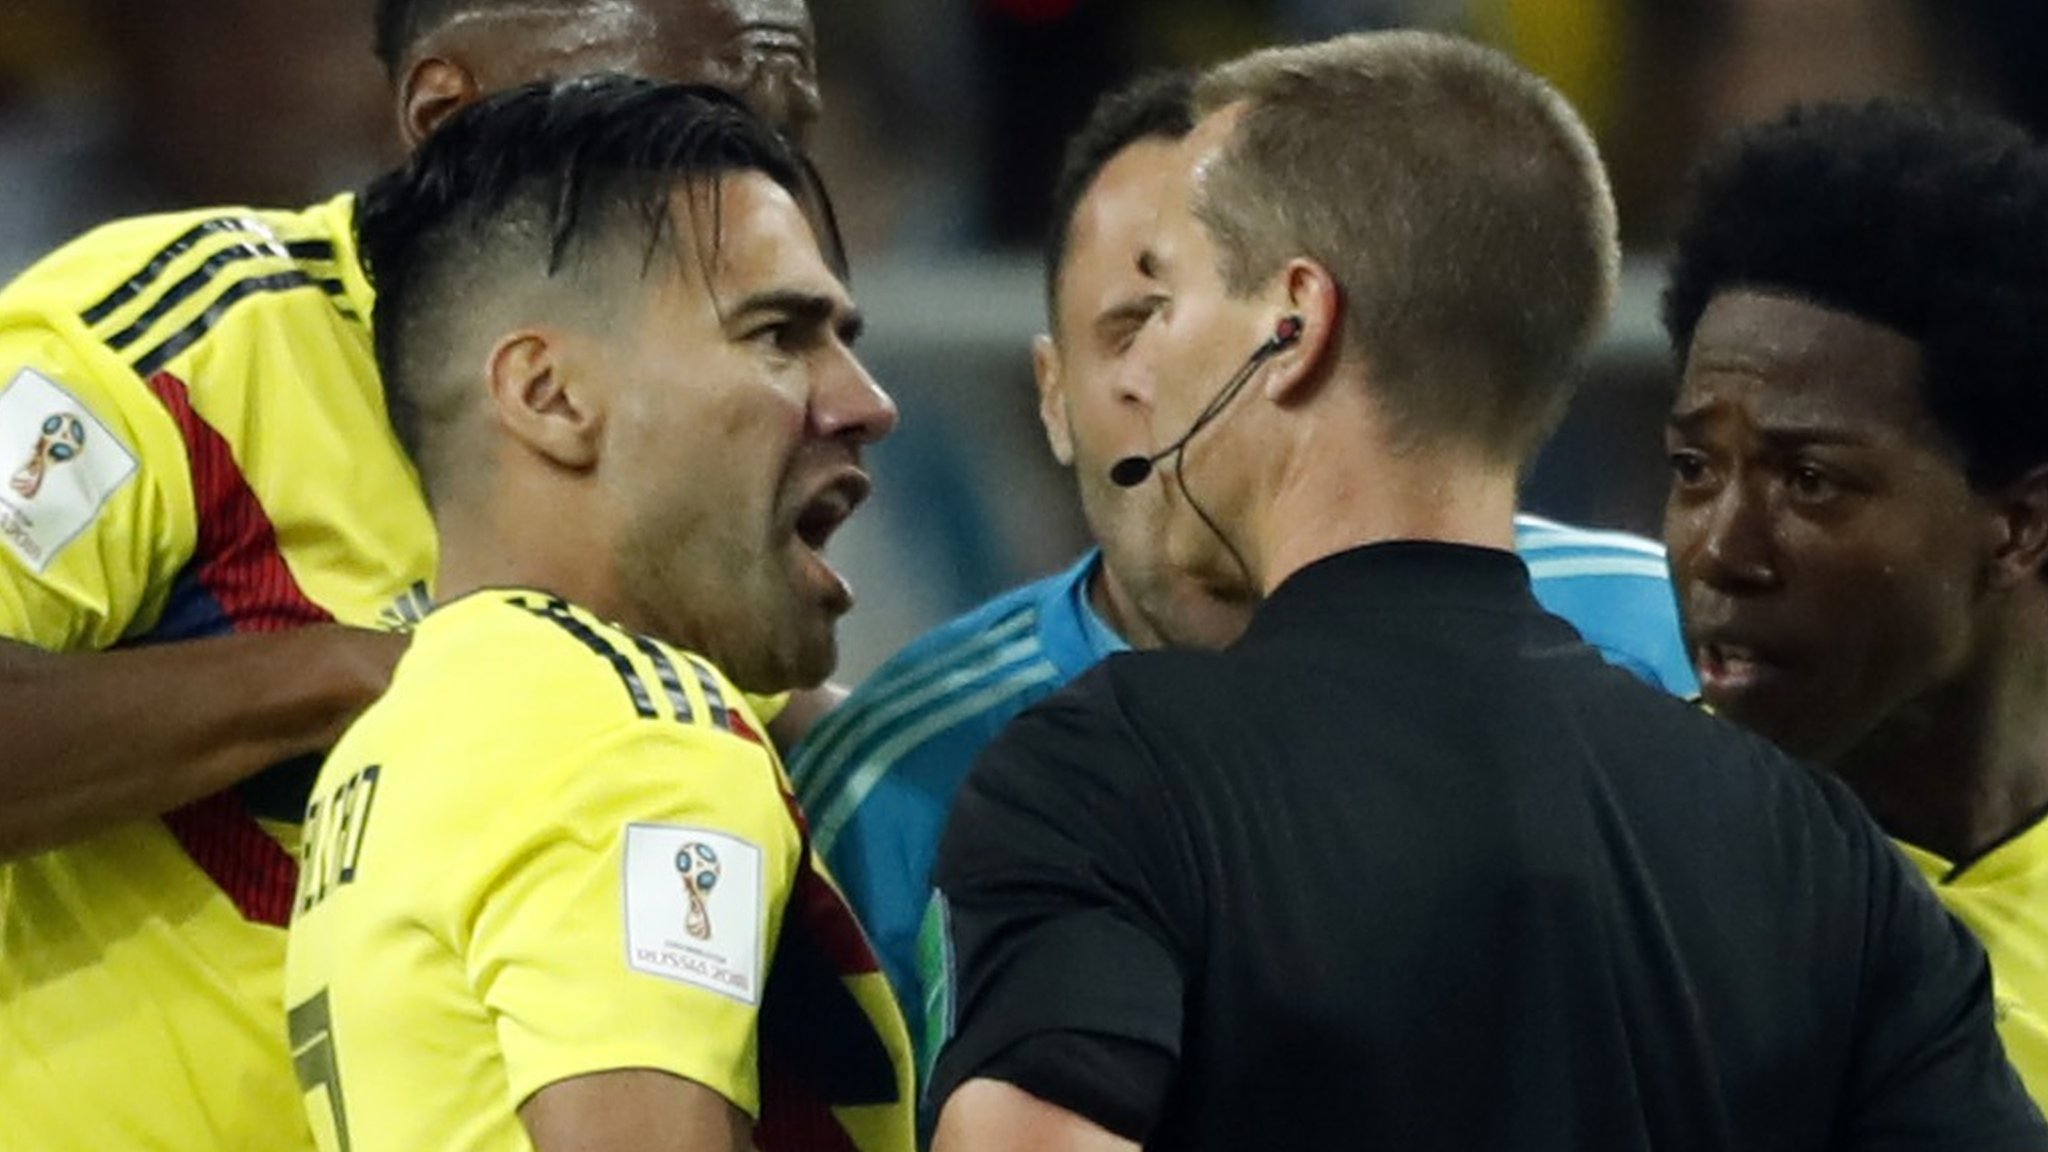 World Cup 2018: Diego Maradona says England committed 'robbery' against Colombia